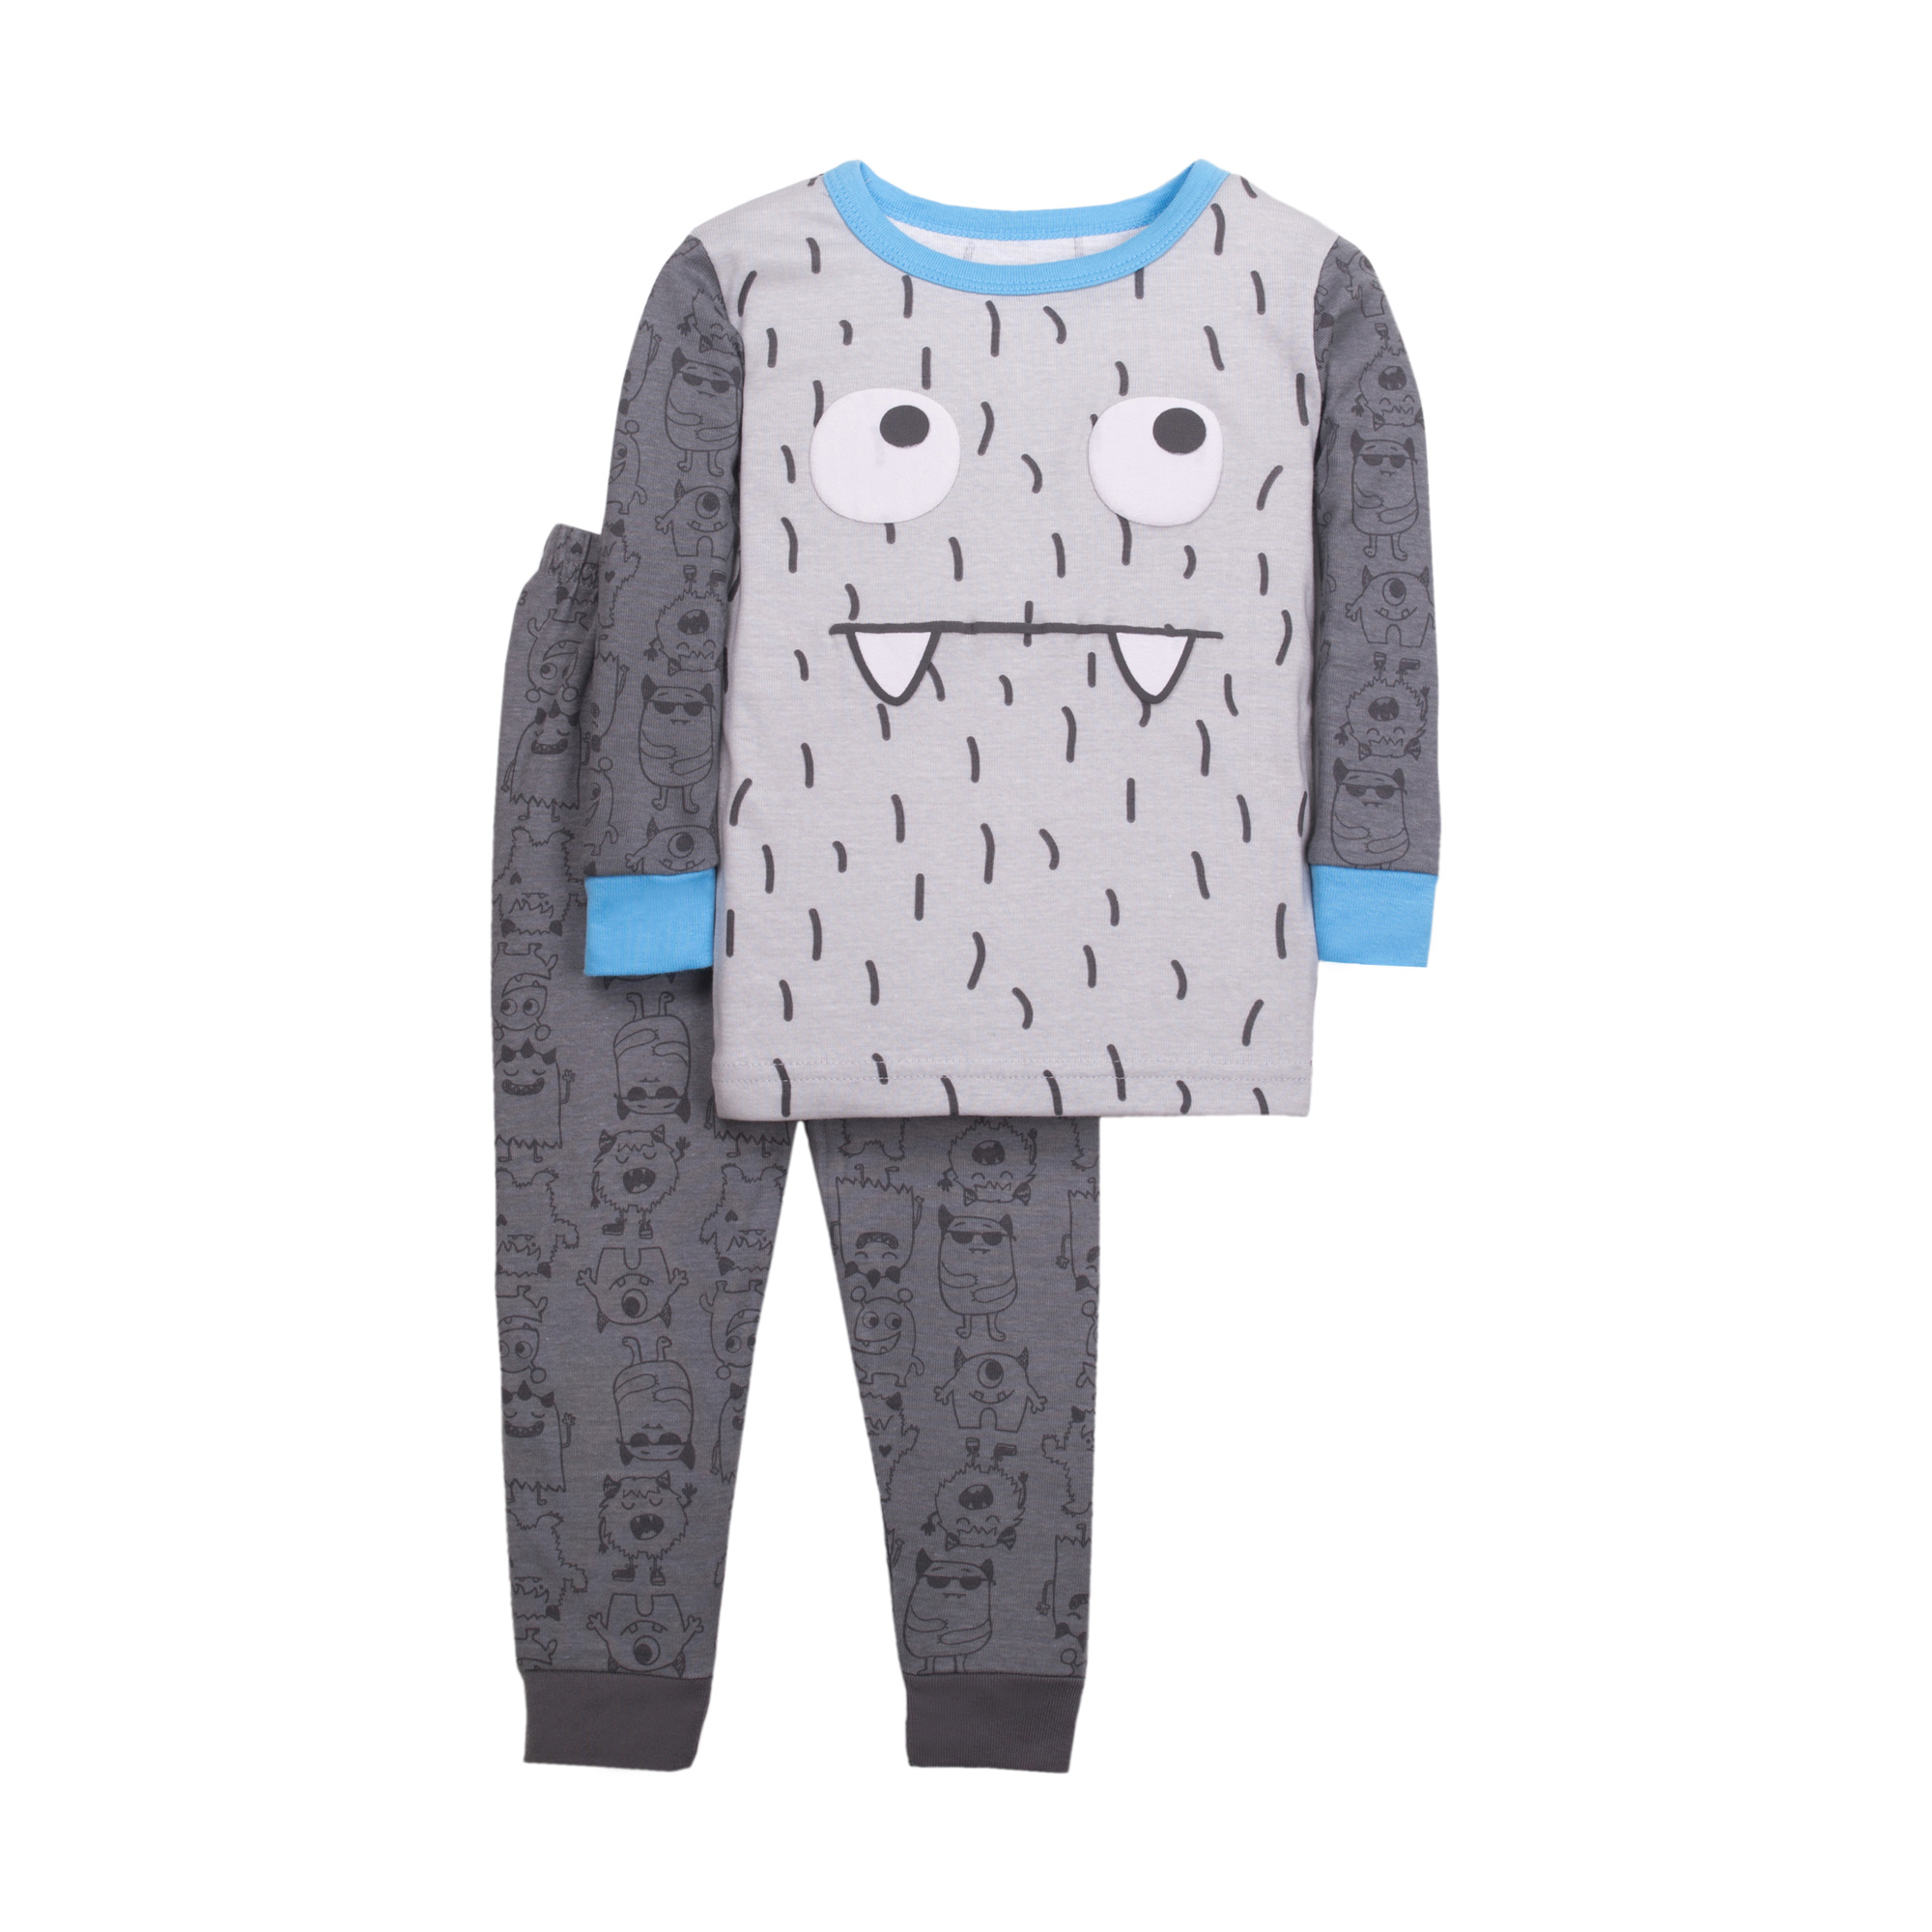 Baby Toddler Boy Tight Fit 2pc Pajamas